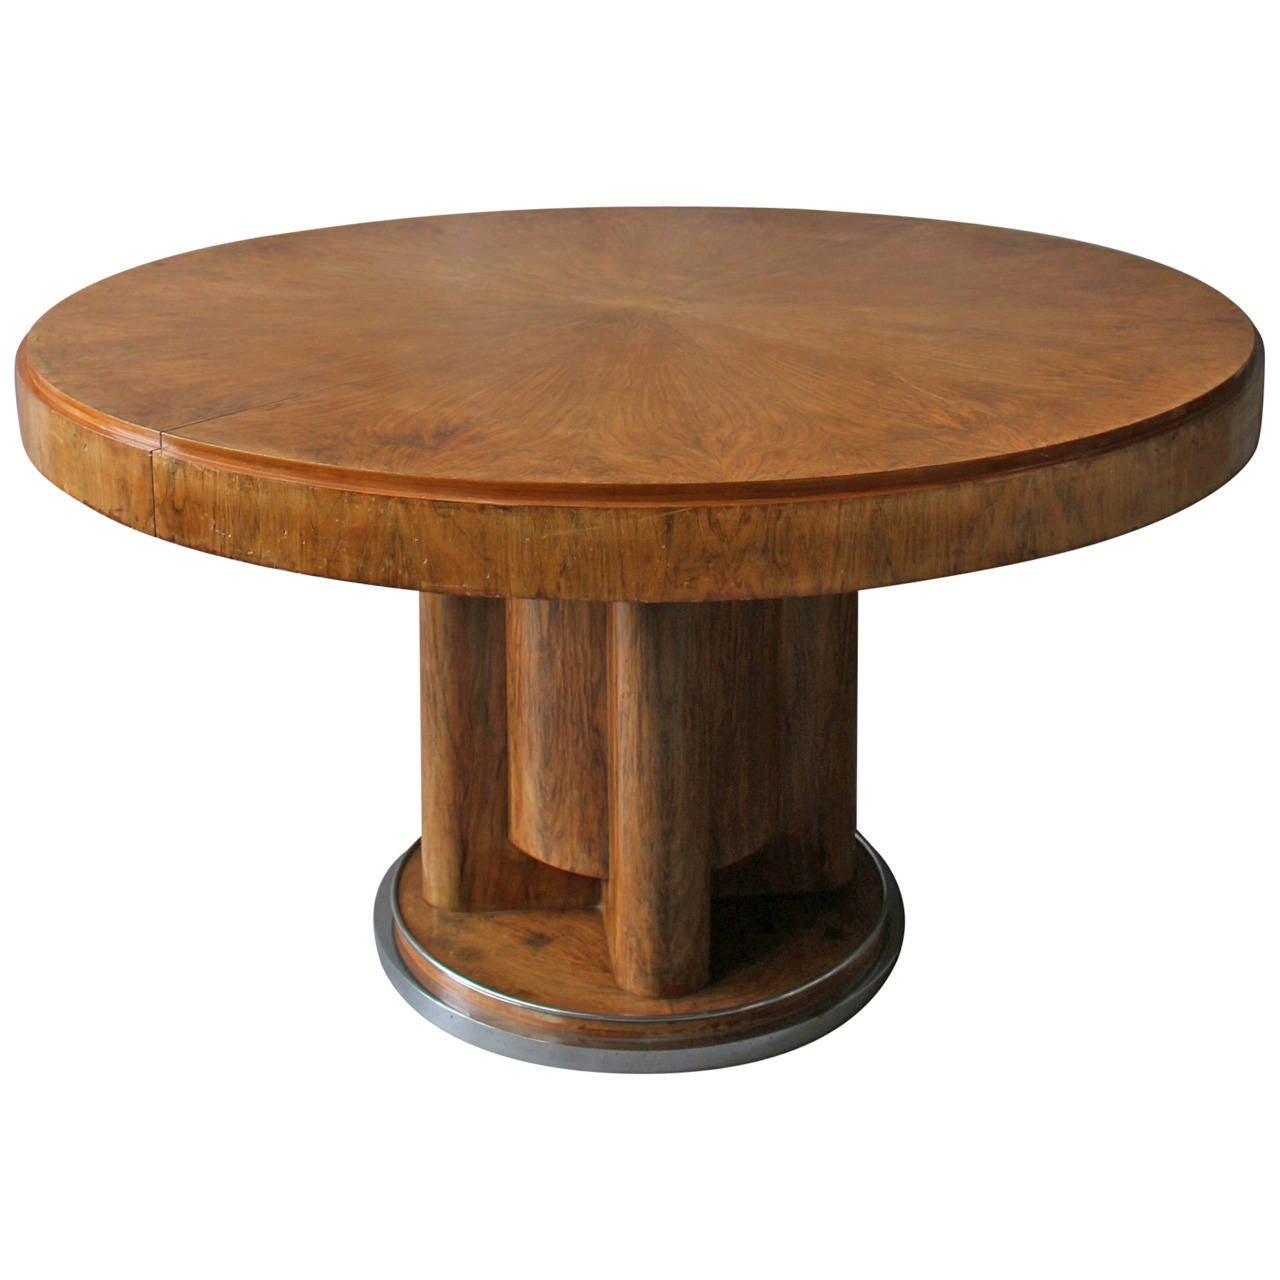 Fine french art deco walnut round dining table for sale at for Circular dining table